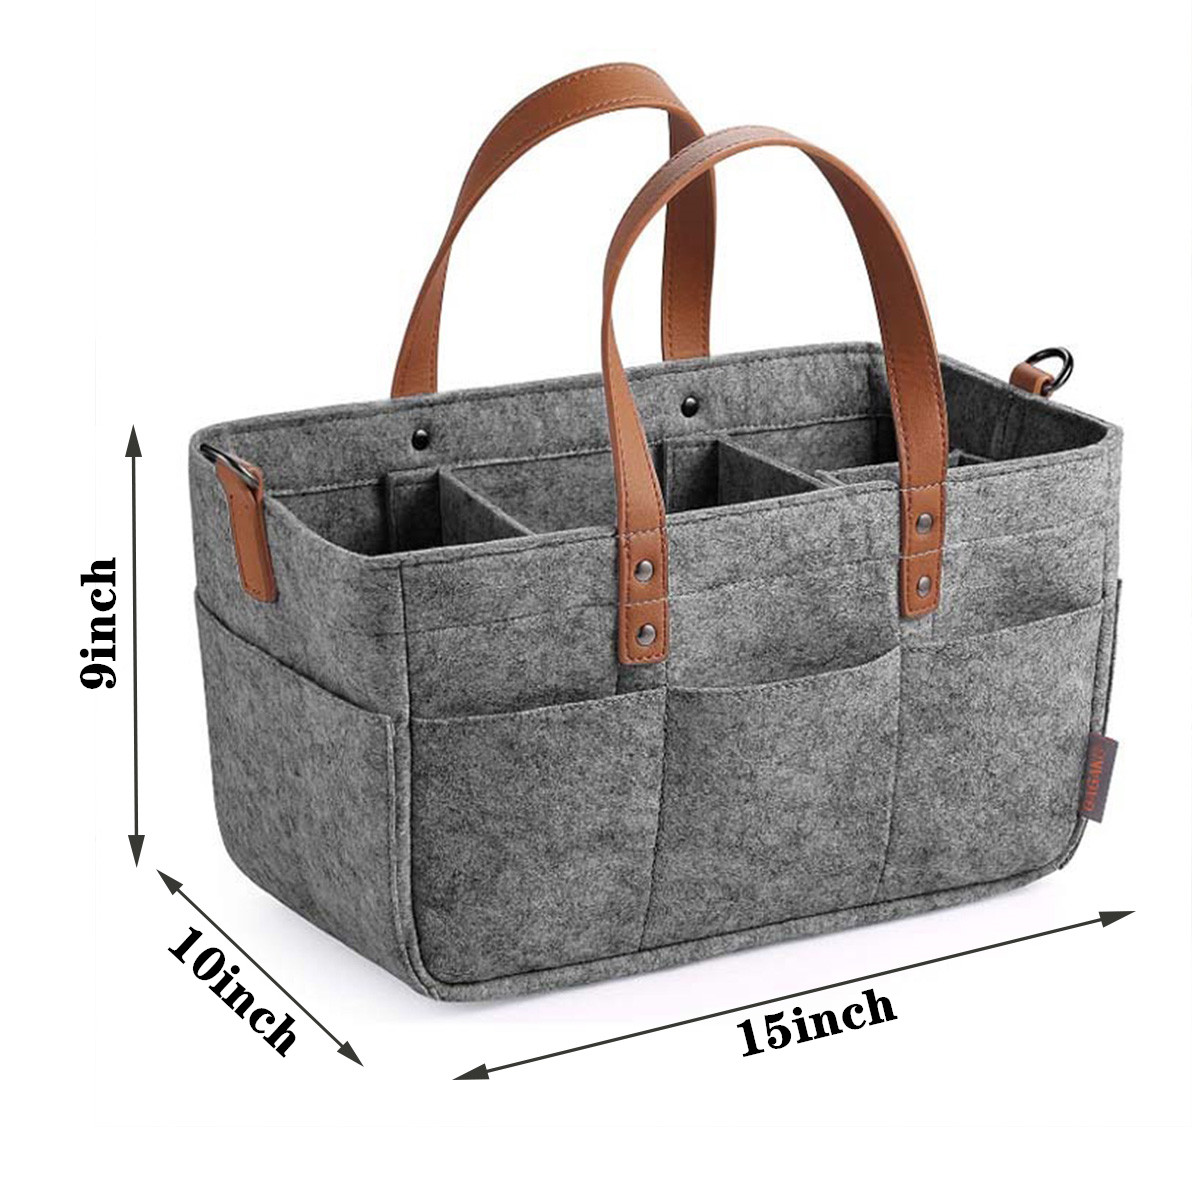 Portable Diaper Caddy Organiser Baby Nappy Storage Outdoor Basket Wipes Tote Bag